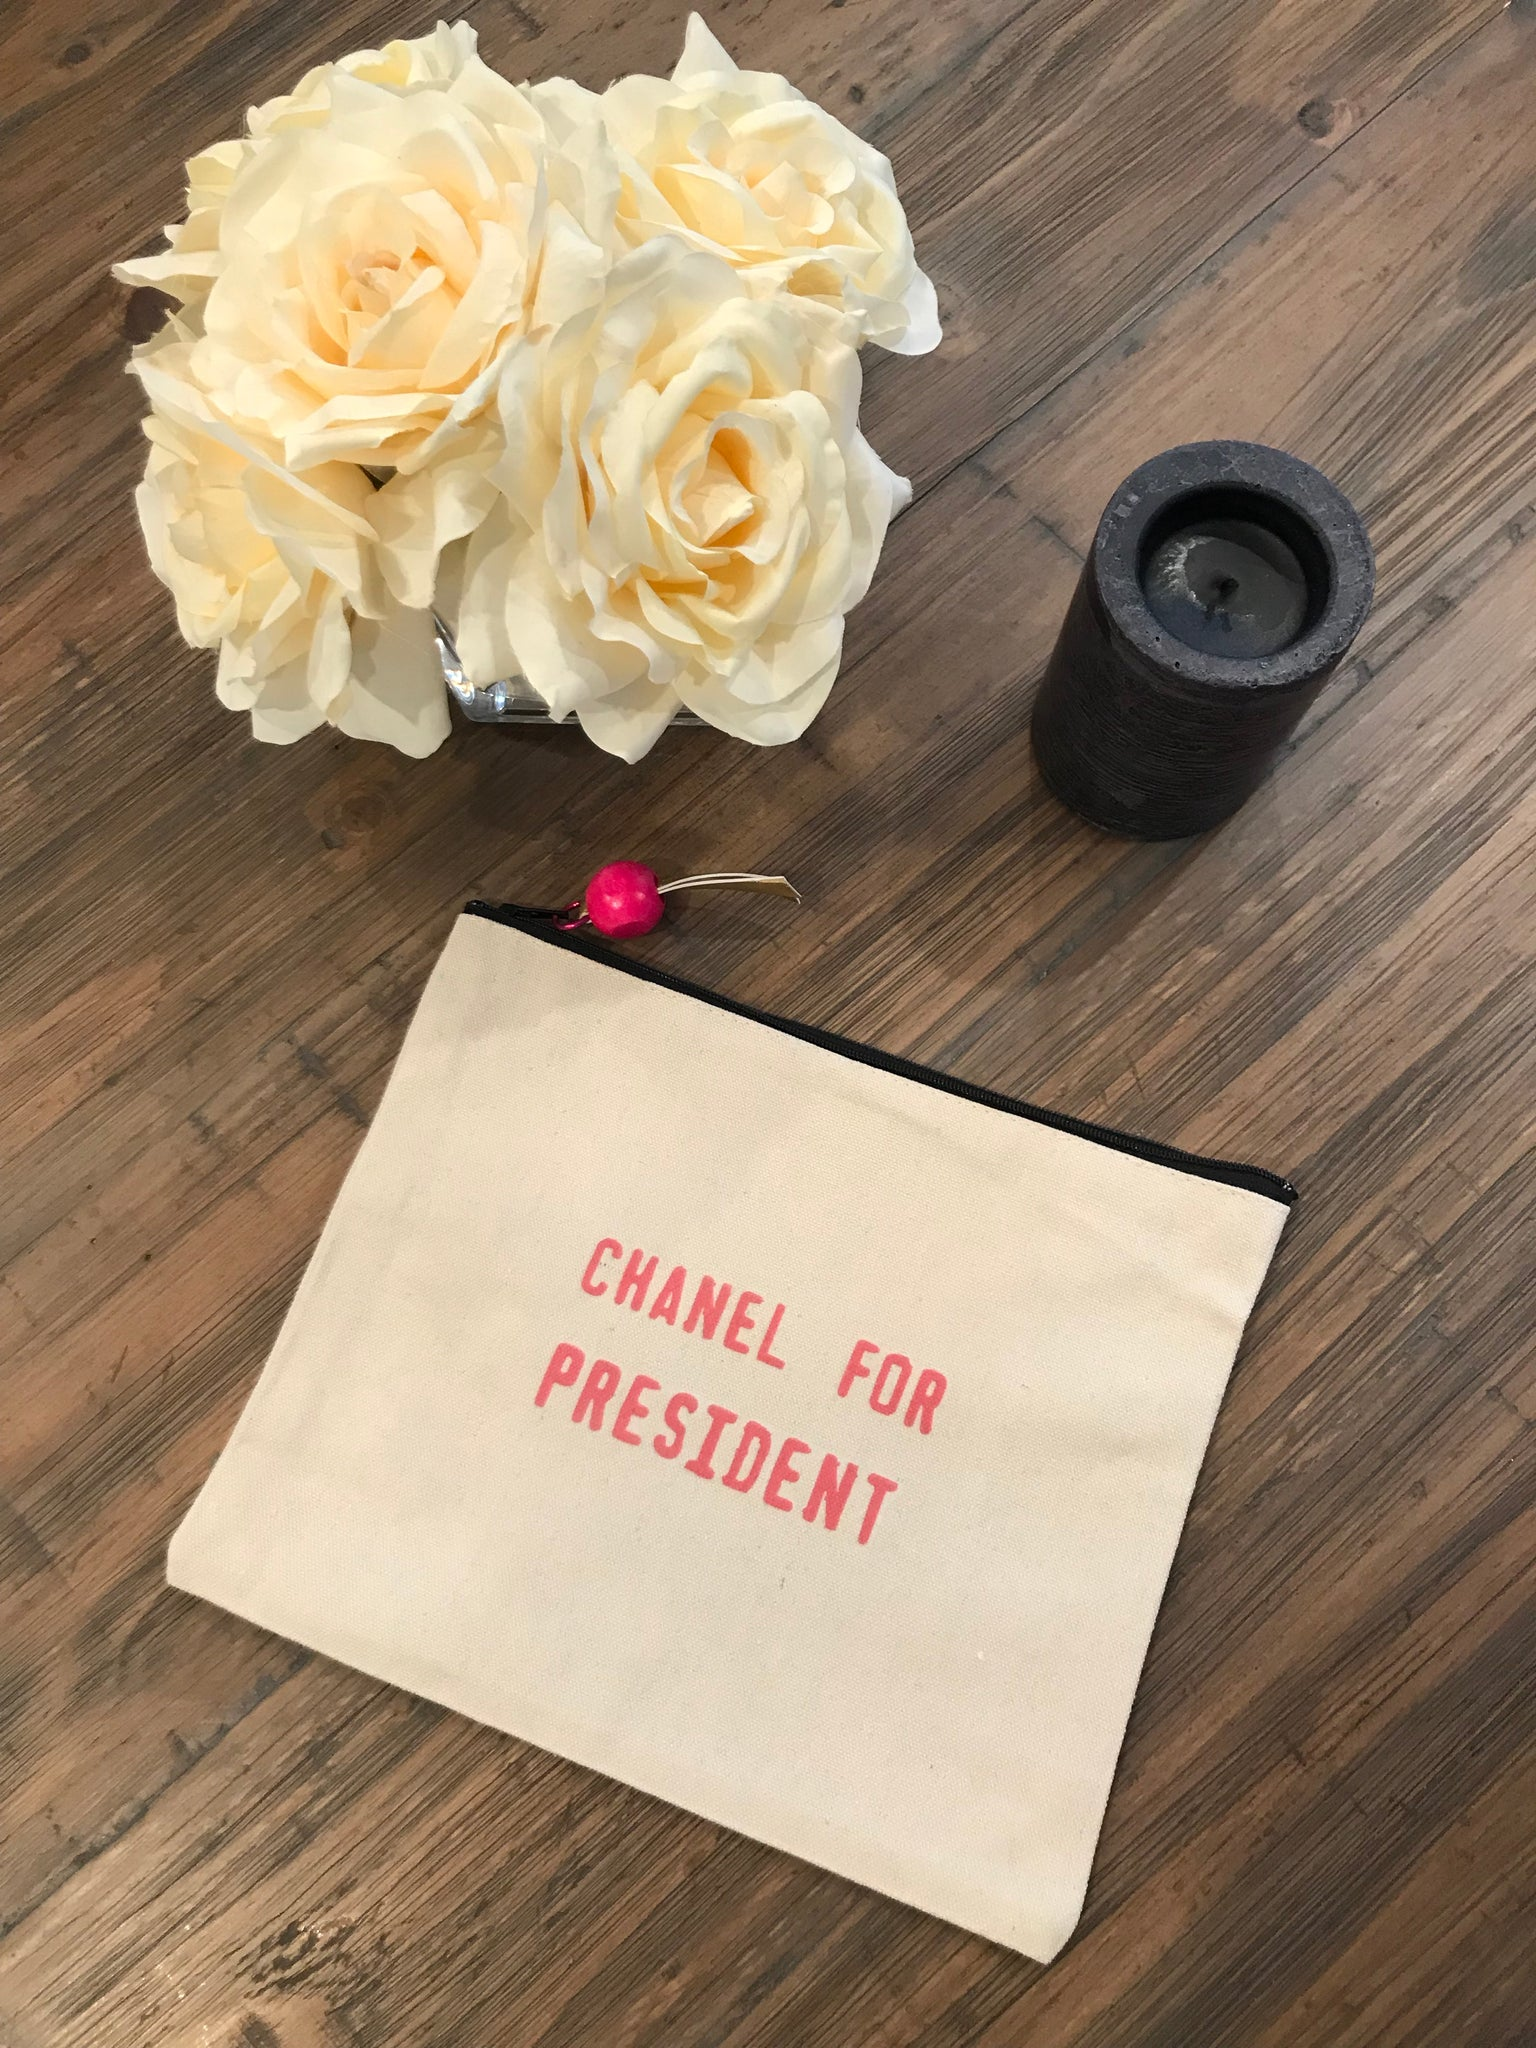 Chanel for President Canvas Pouch